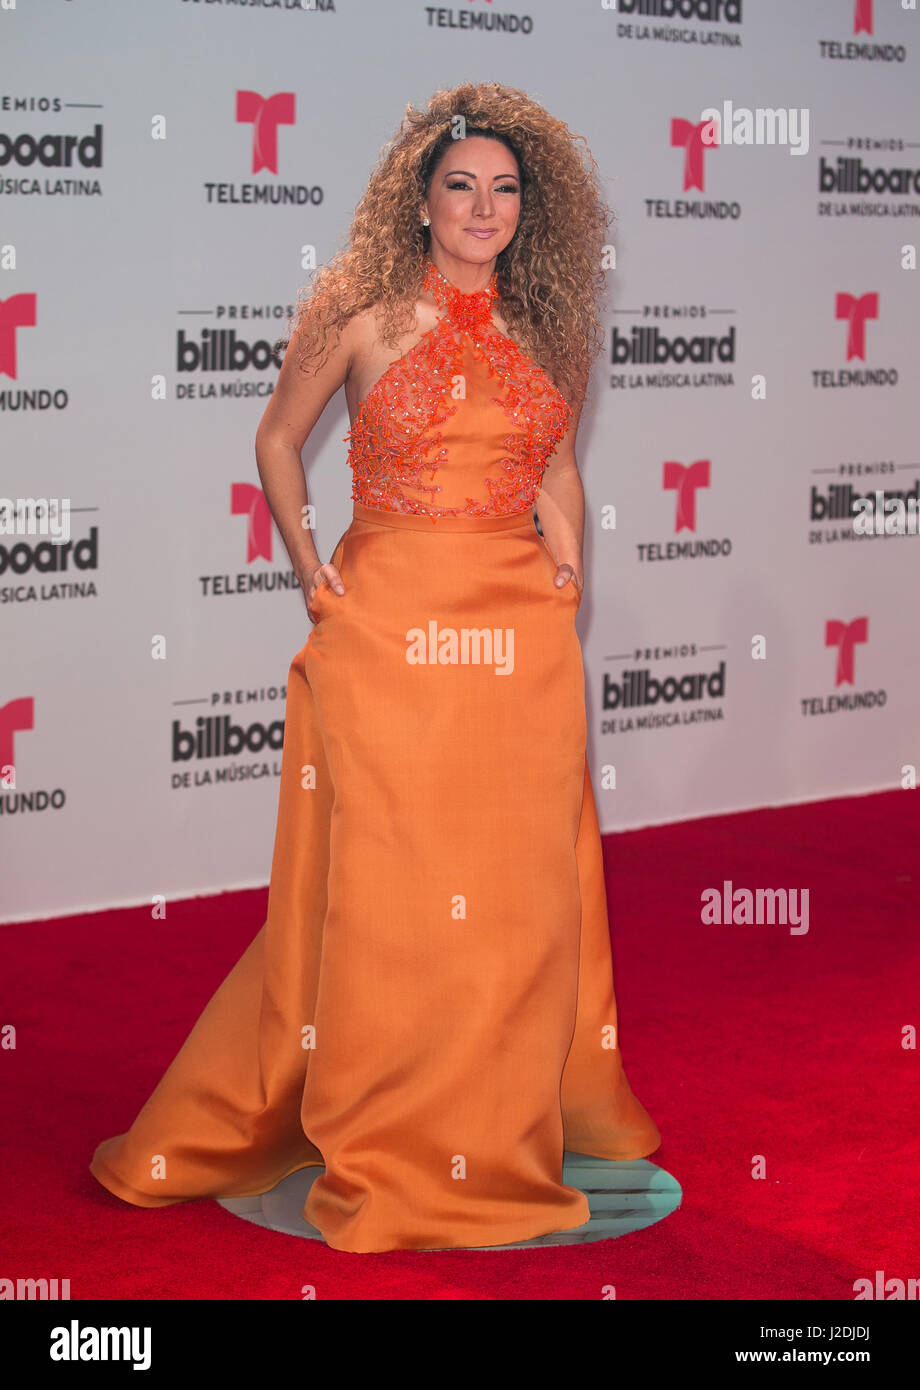 Young Erika Ender nudes (45 photos), Topless, Fappening, Boobs, cleavage 2020